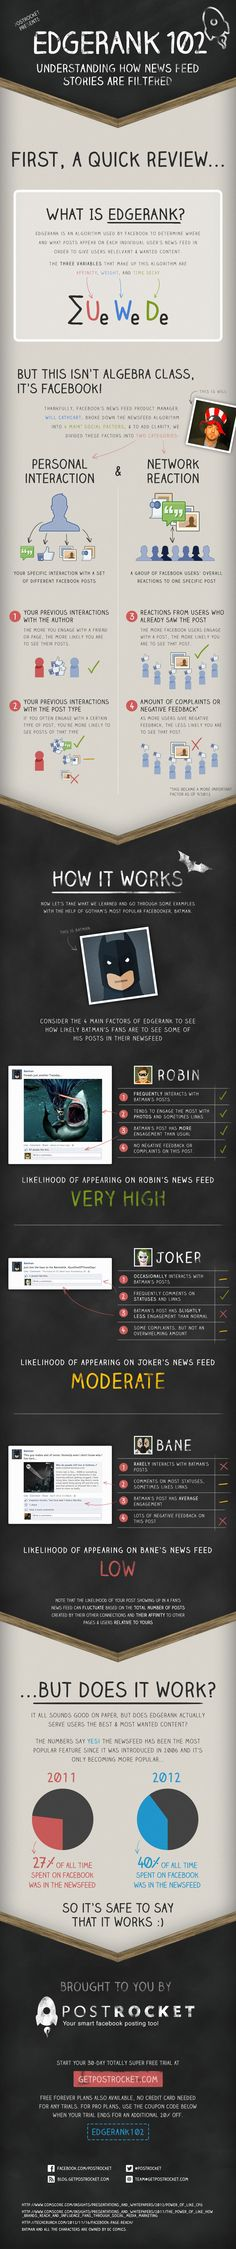 #edgerank #batman #socialmedia #facebook #socialnetwork #digital #hero